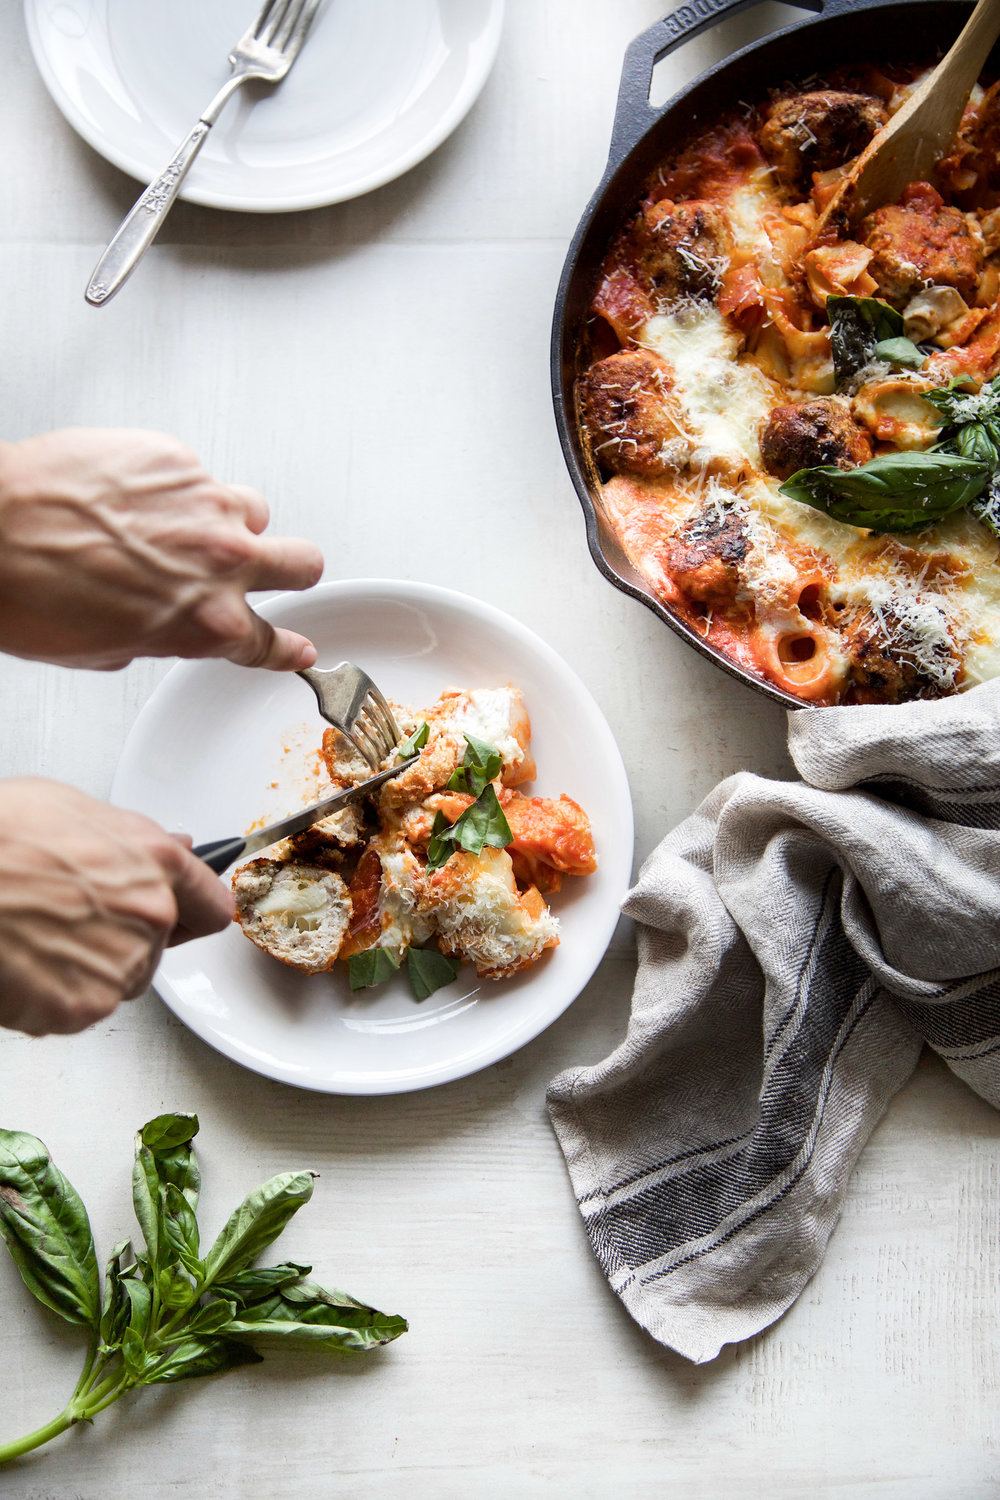 One-Pan-Chicken-Parm-Meatball-Burrata-Pasta-Bake8.jpg